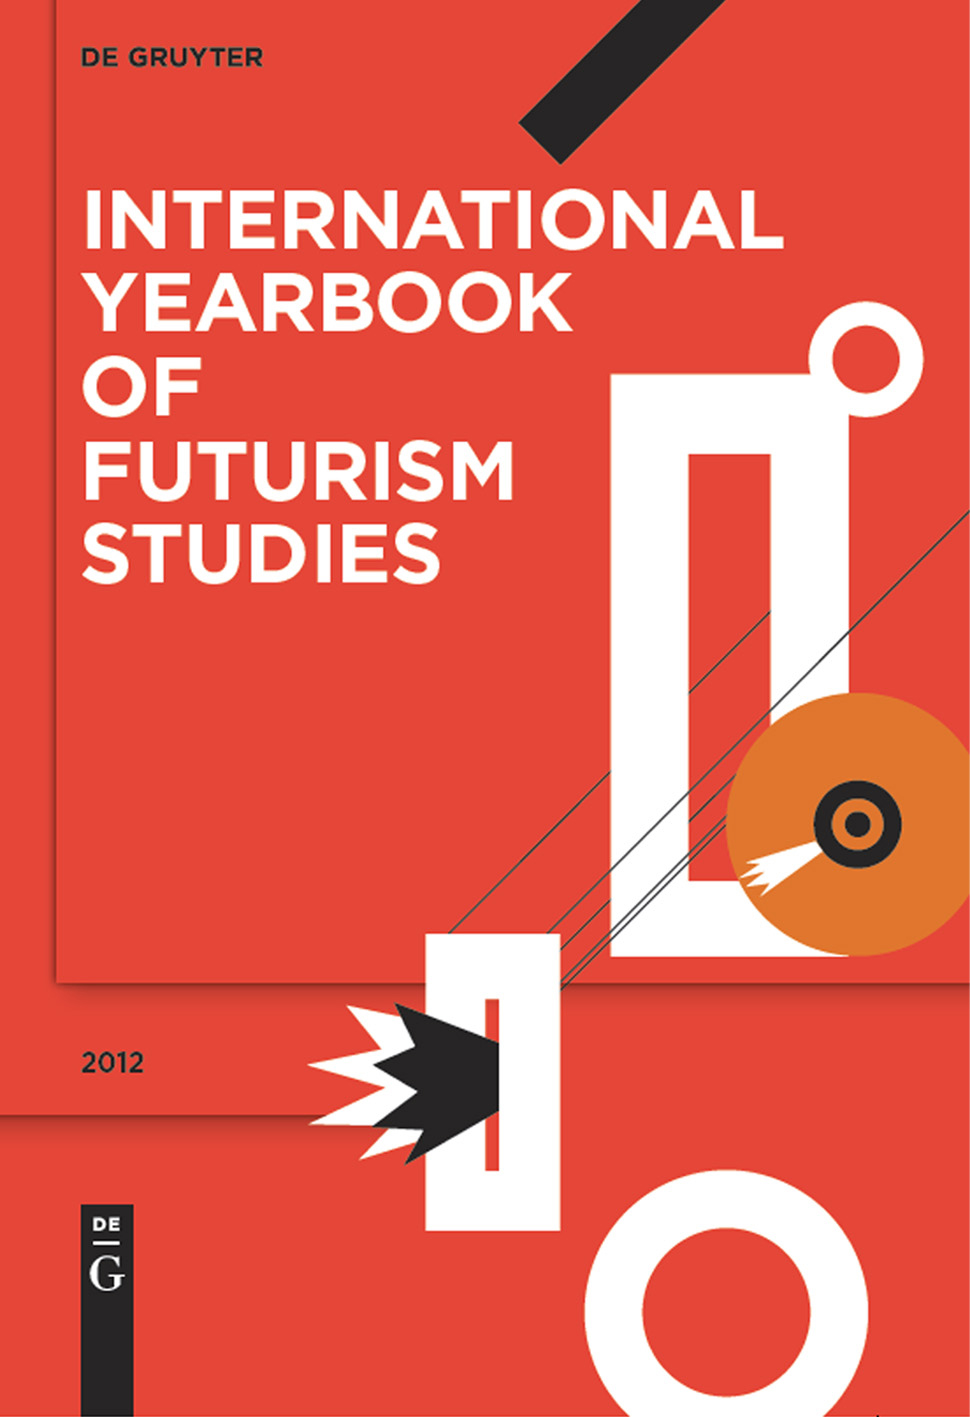 2012 Yearbook 0 Cover.jpg